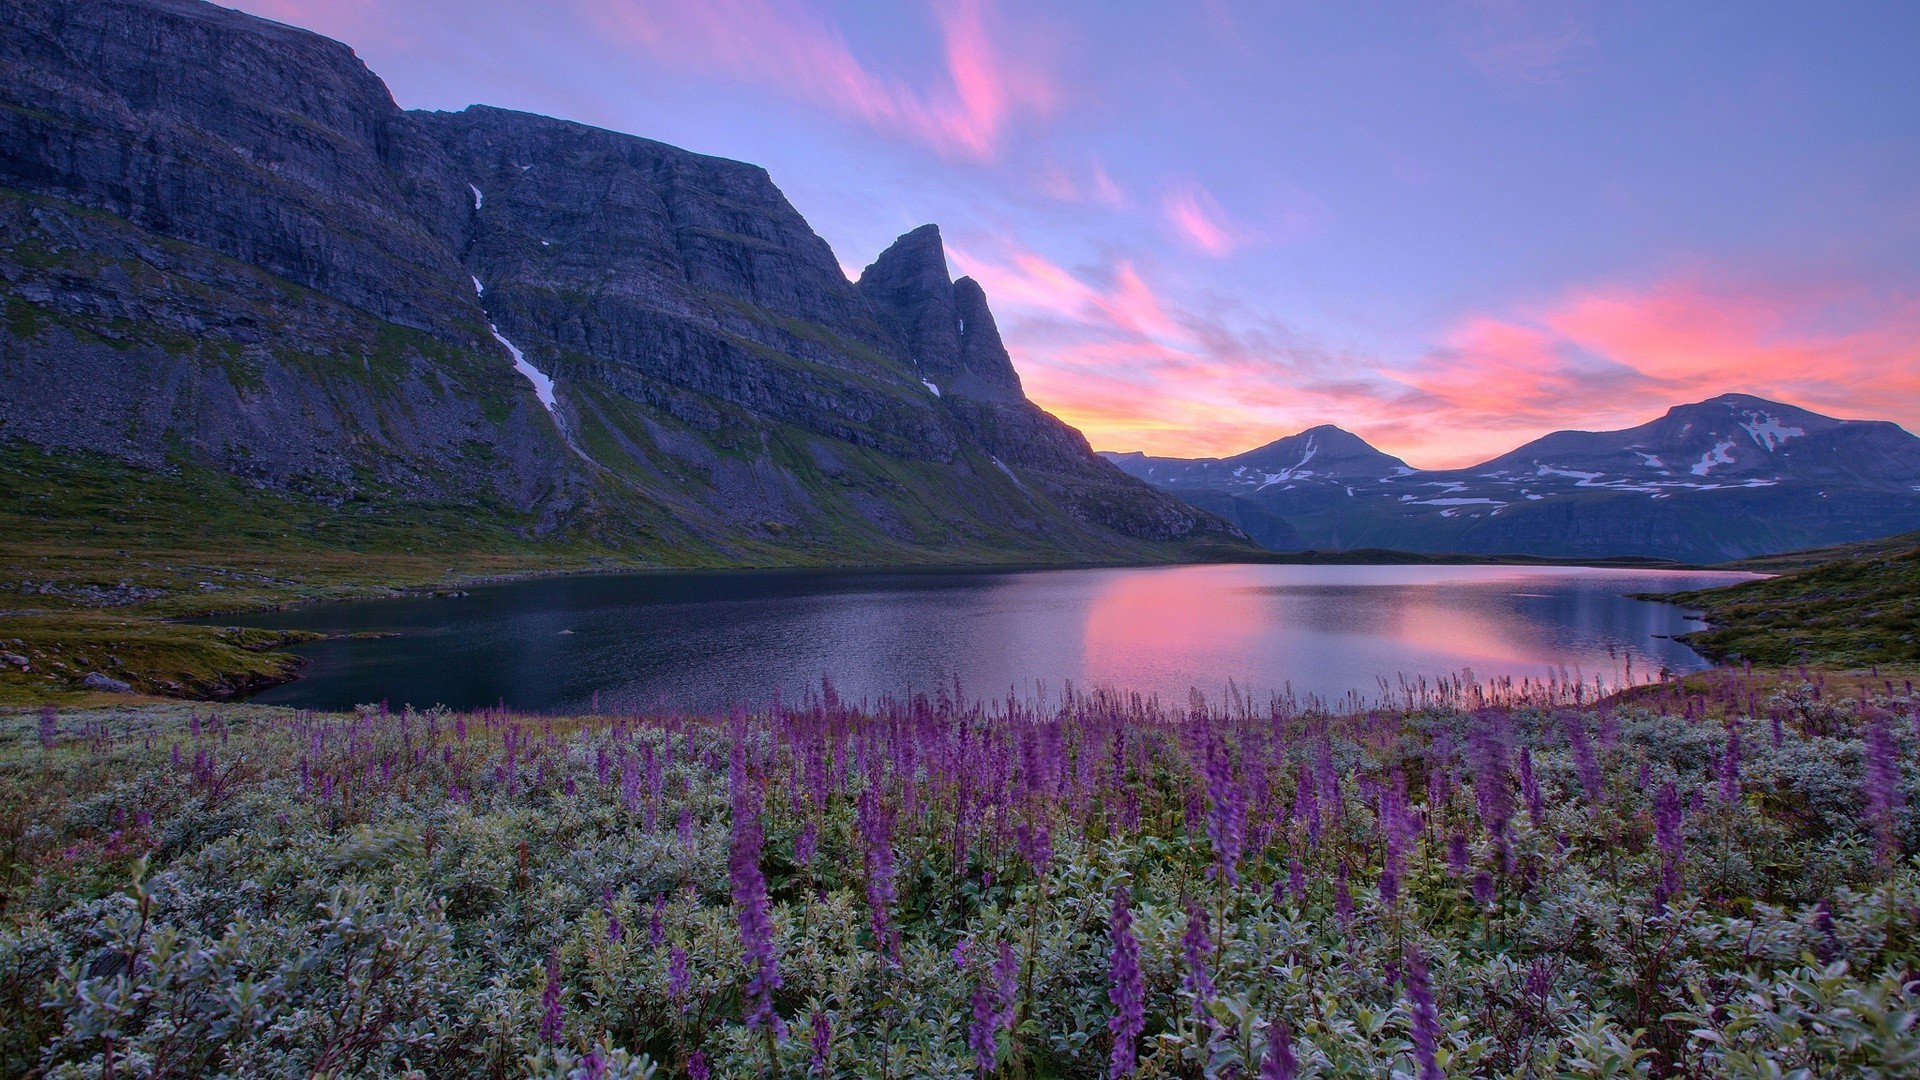 Dawn in the mountains of Norway